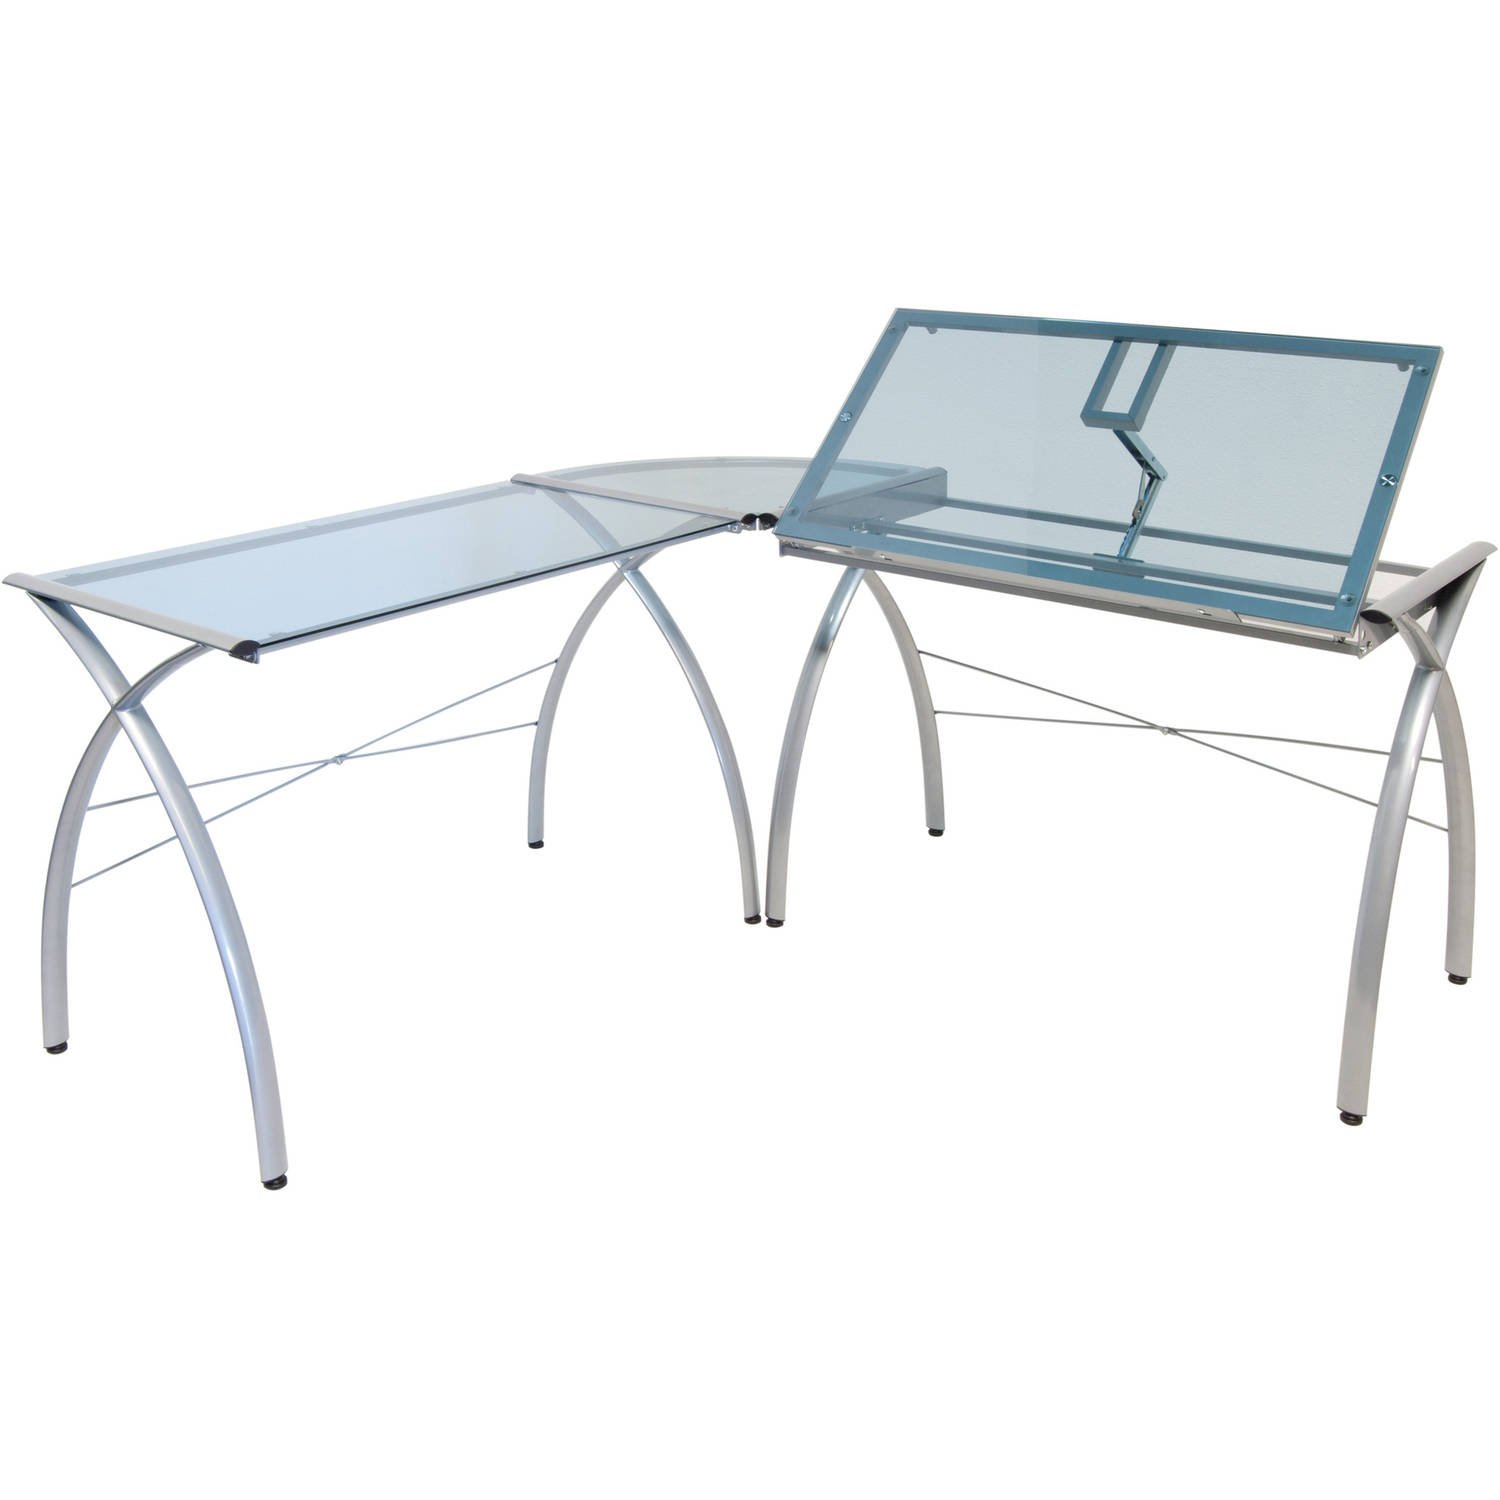 Corner Desk Drafting Table, L Shaped, Workstation, Adjustable Split Top, Functional, Suitable for Home Office, Art Student, Work and Craft Furniture + Expert Guide by Care 4 Home LLC (Image #2)